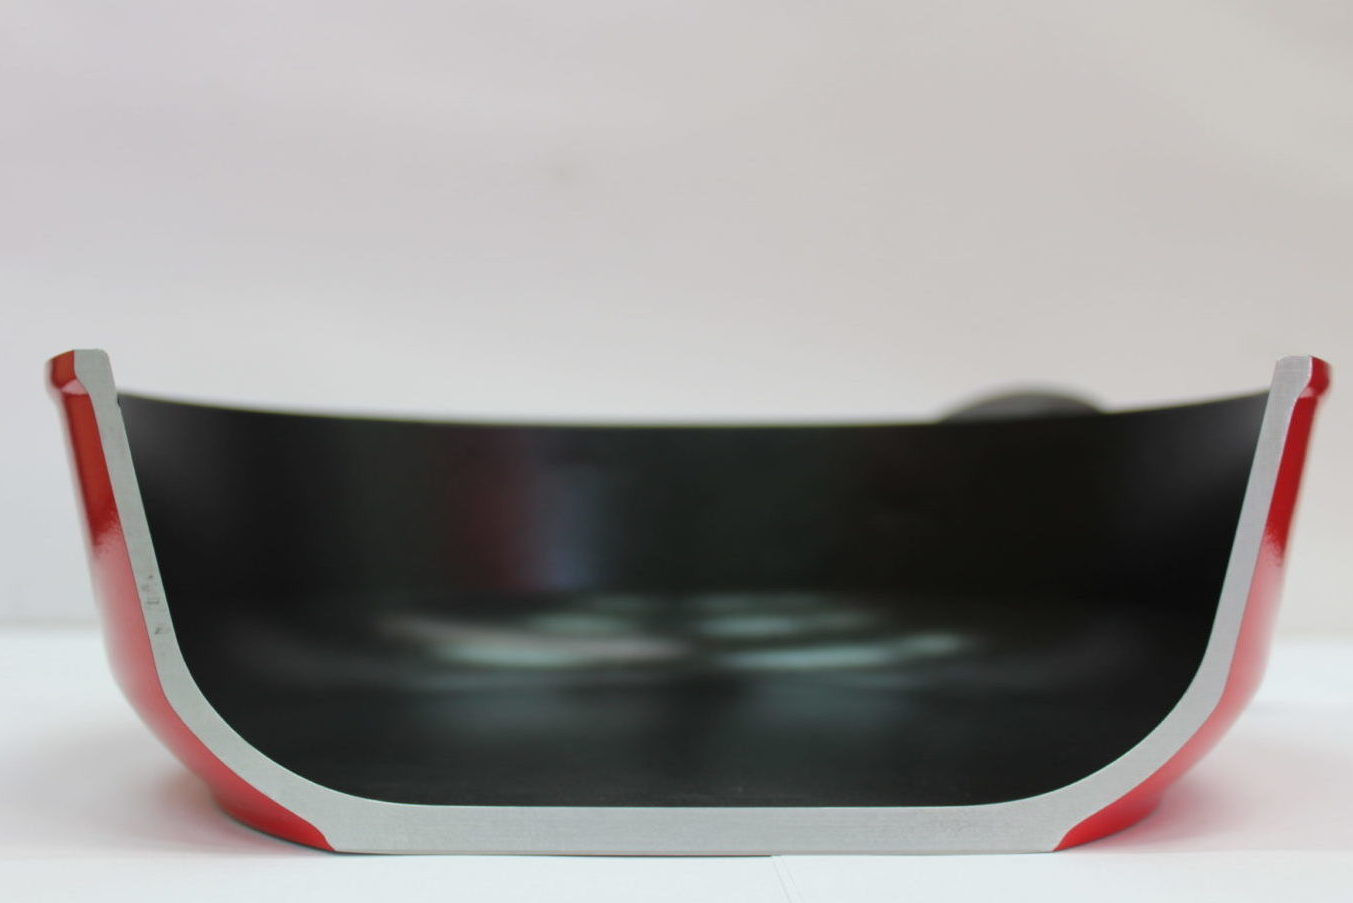 Coated induction cookware using cold spray